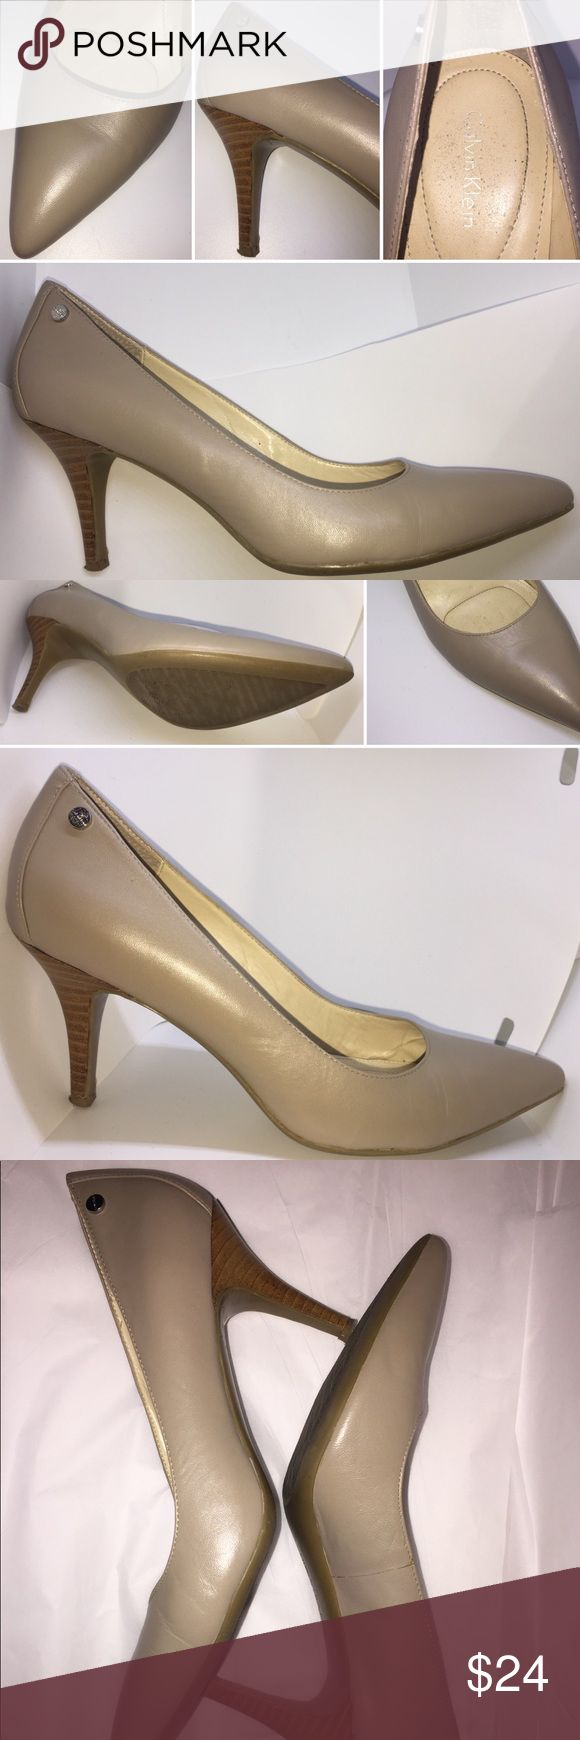 I just added this listing on Poshmark: CALVIN KLEIN Casual Office Nude Pointy Toe Pumps 9. #shopmycloset #poshmark #fashion #shopping #style #forsale #Calvin Klein #Shoes